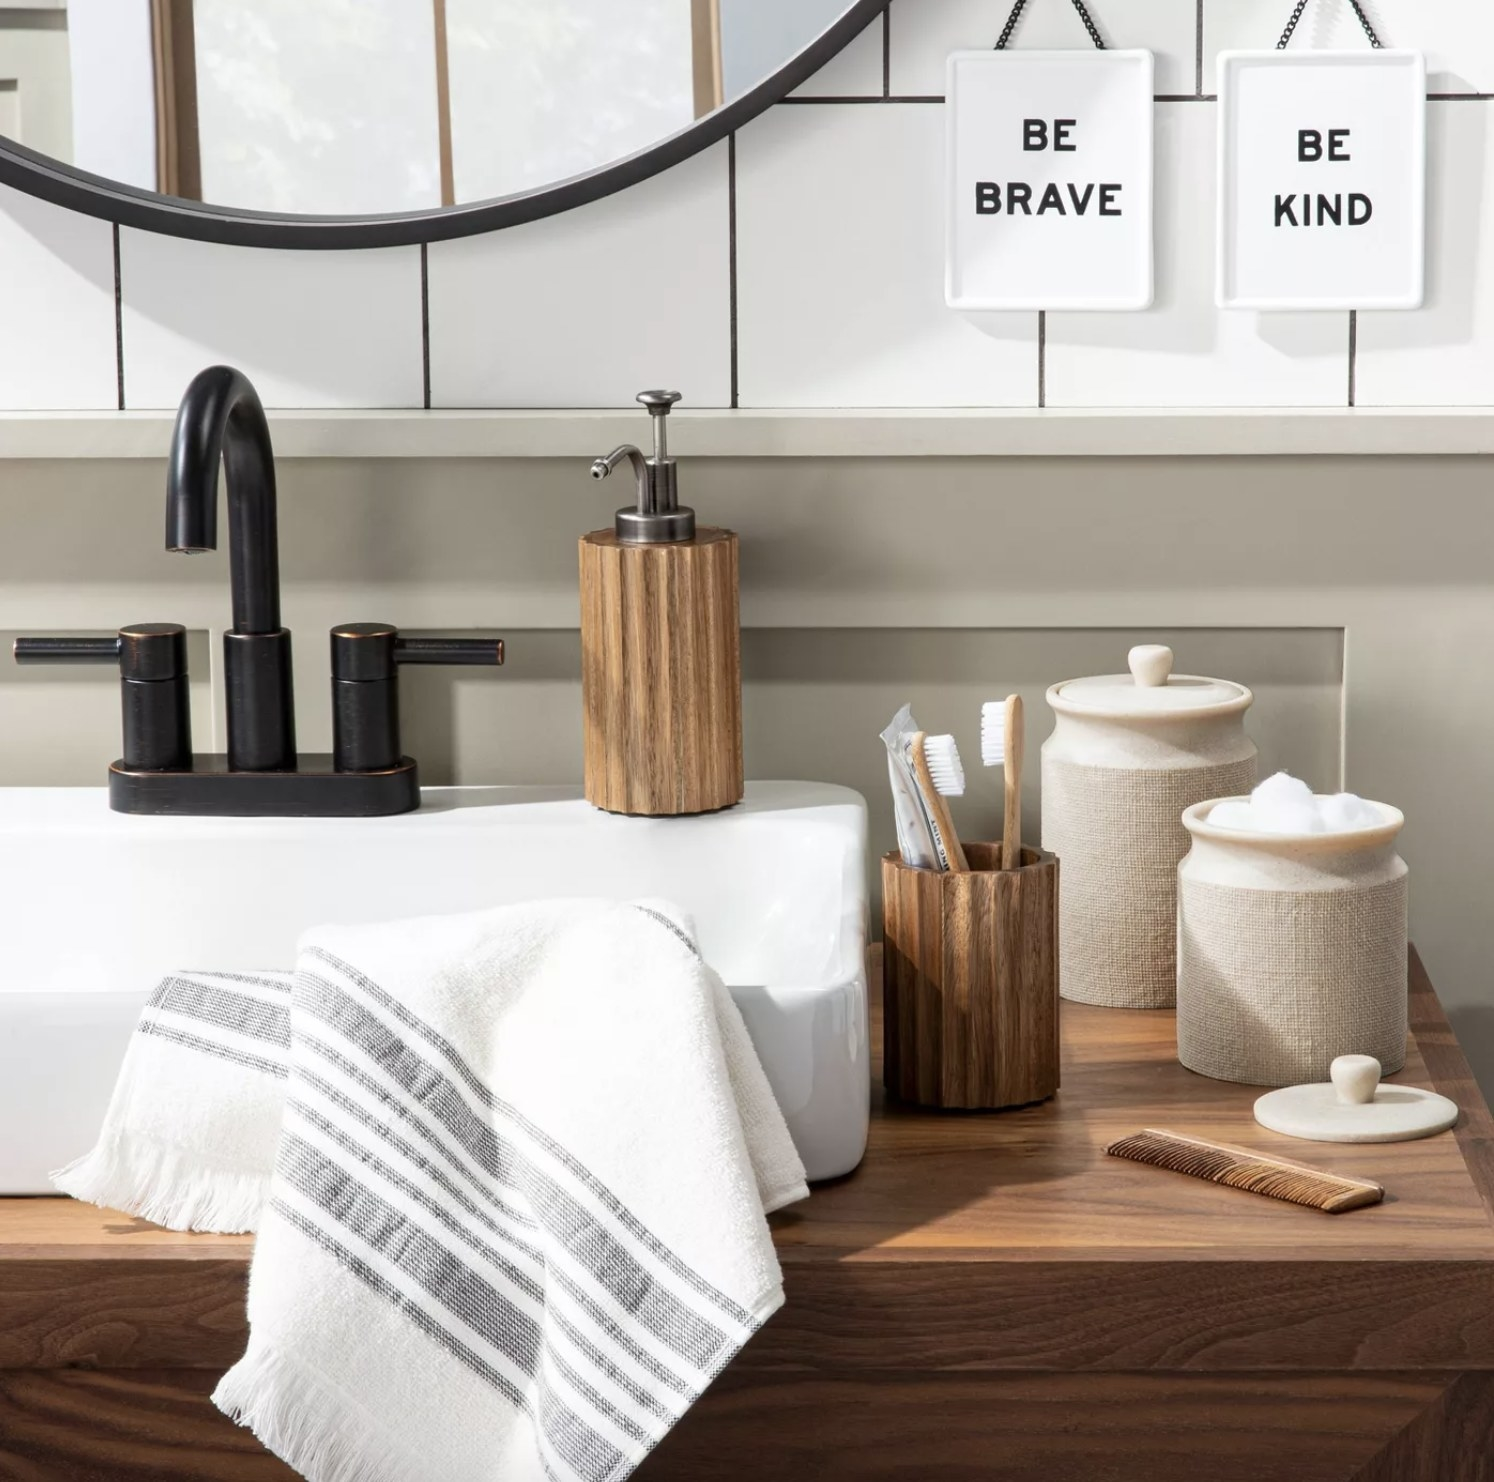 Bath canisters on counter